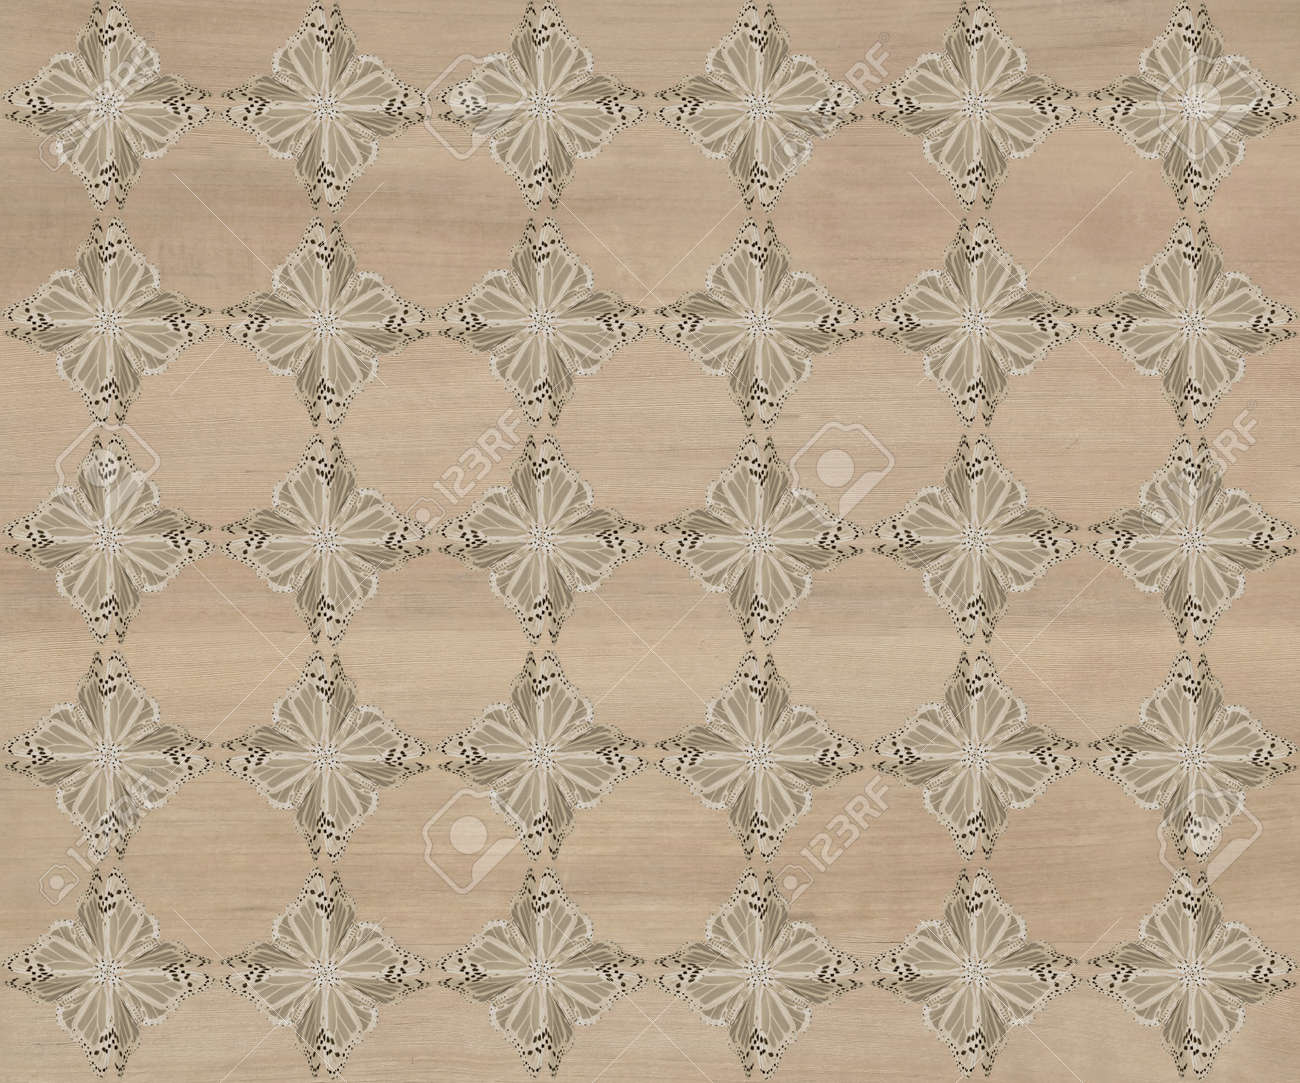 Wood tile, dark grayish brown with darker diamond butterfly pattern inlay  Faux Wood Marquetry Great textured design for flooring, wallpaper  Nice classic look Stock Photo - 13706562